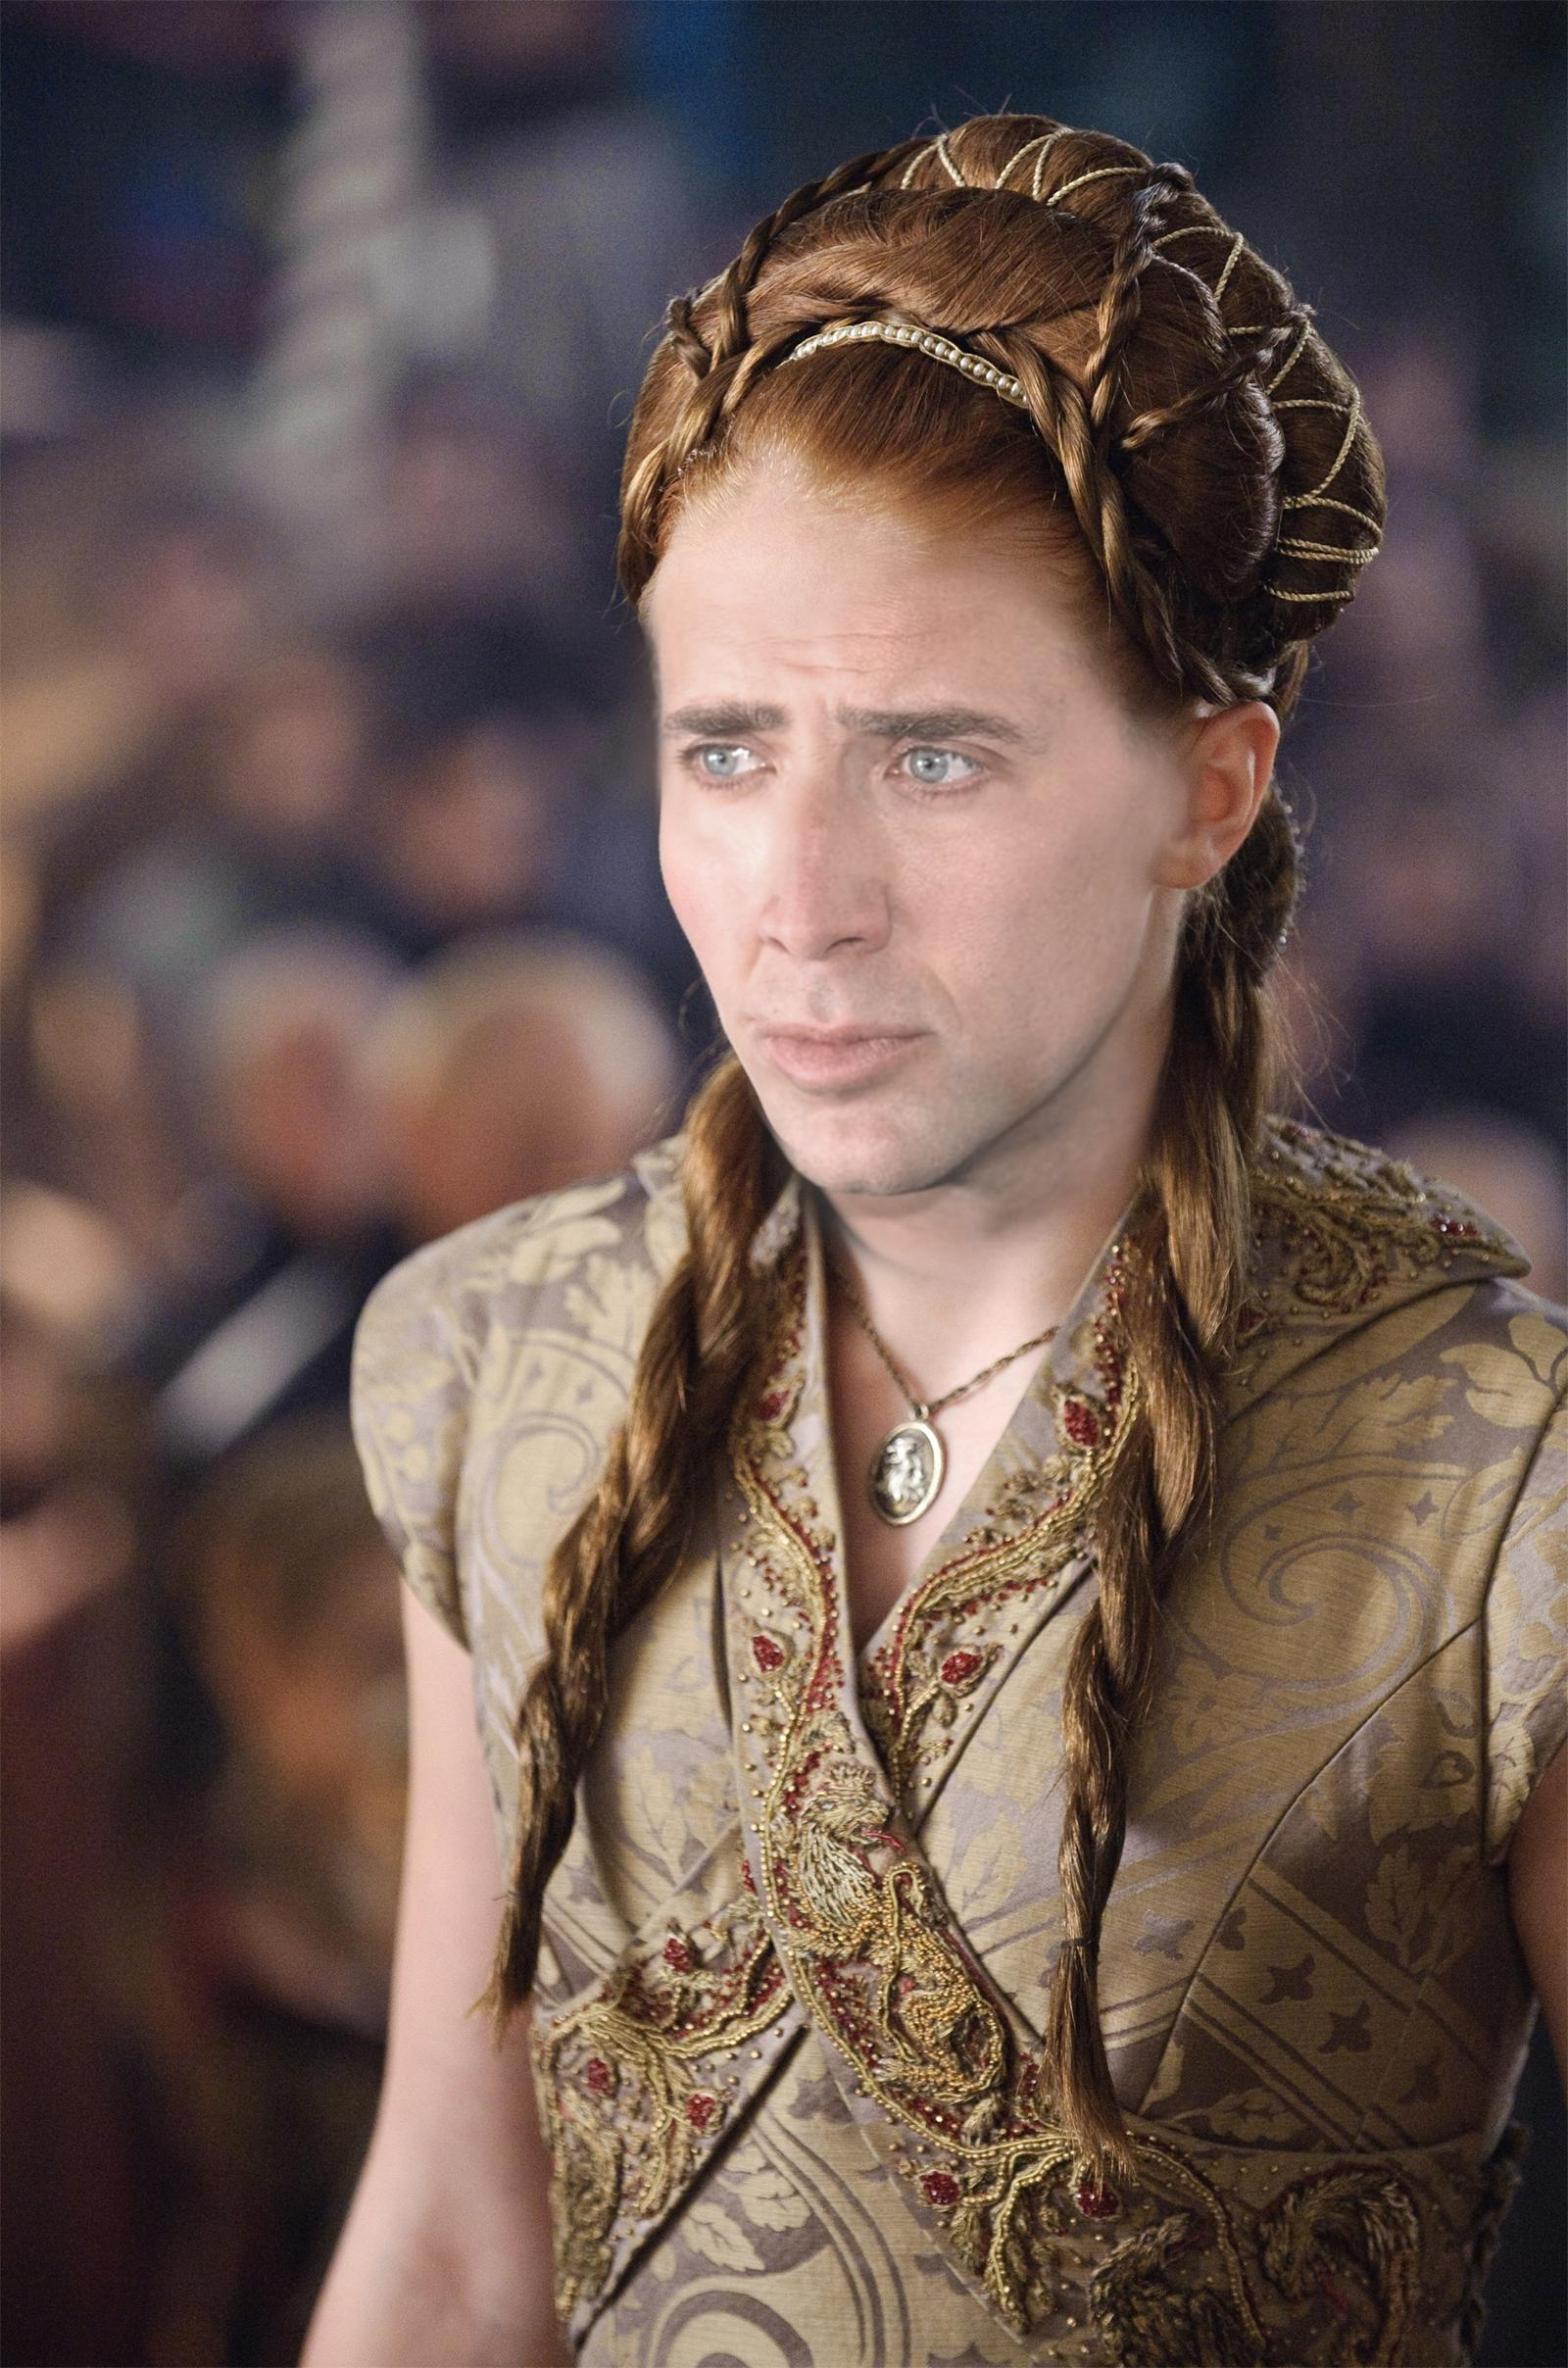 Nicolas Cage As Every Game Of Thrones Character Is Glorious cage of thrones 5